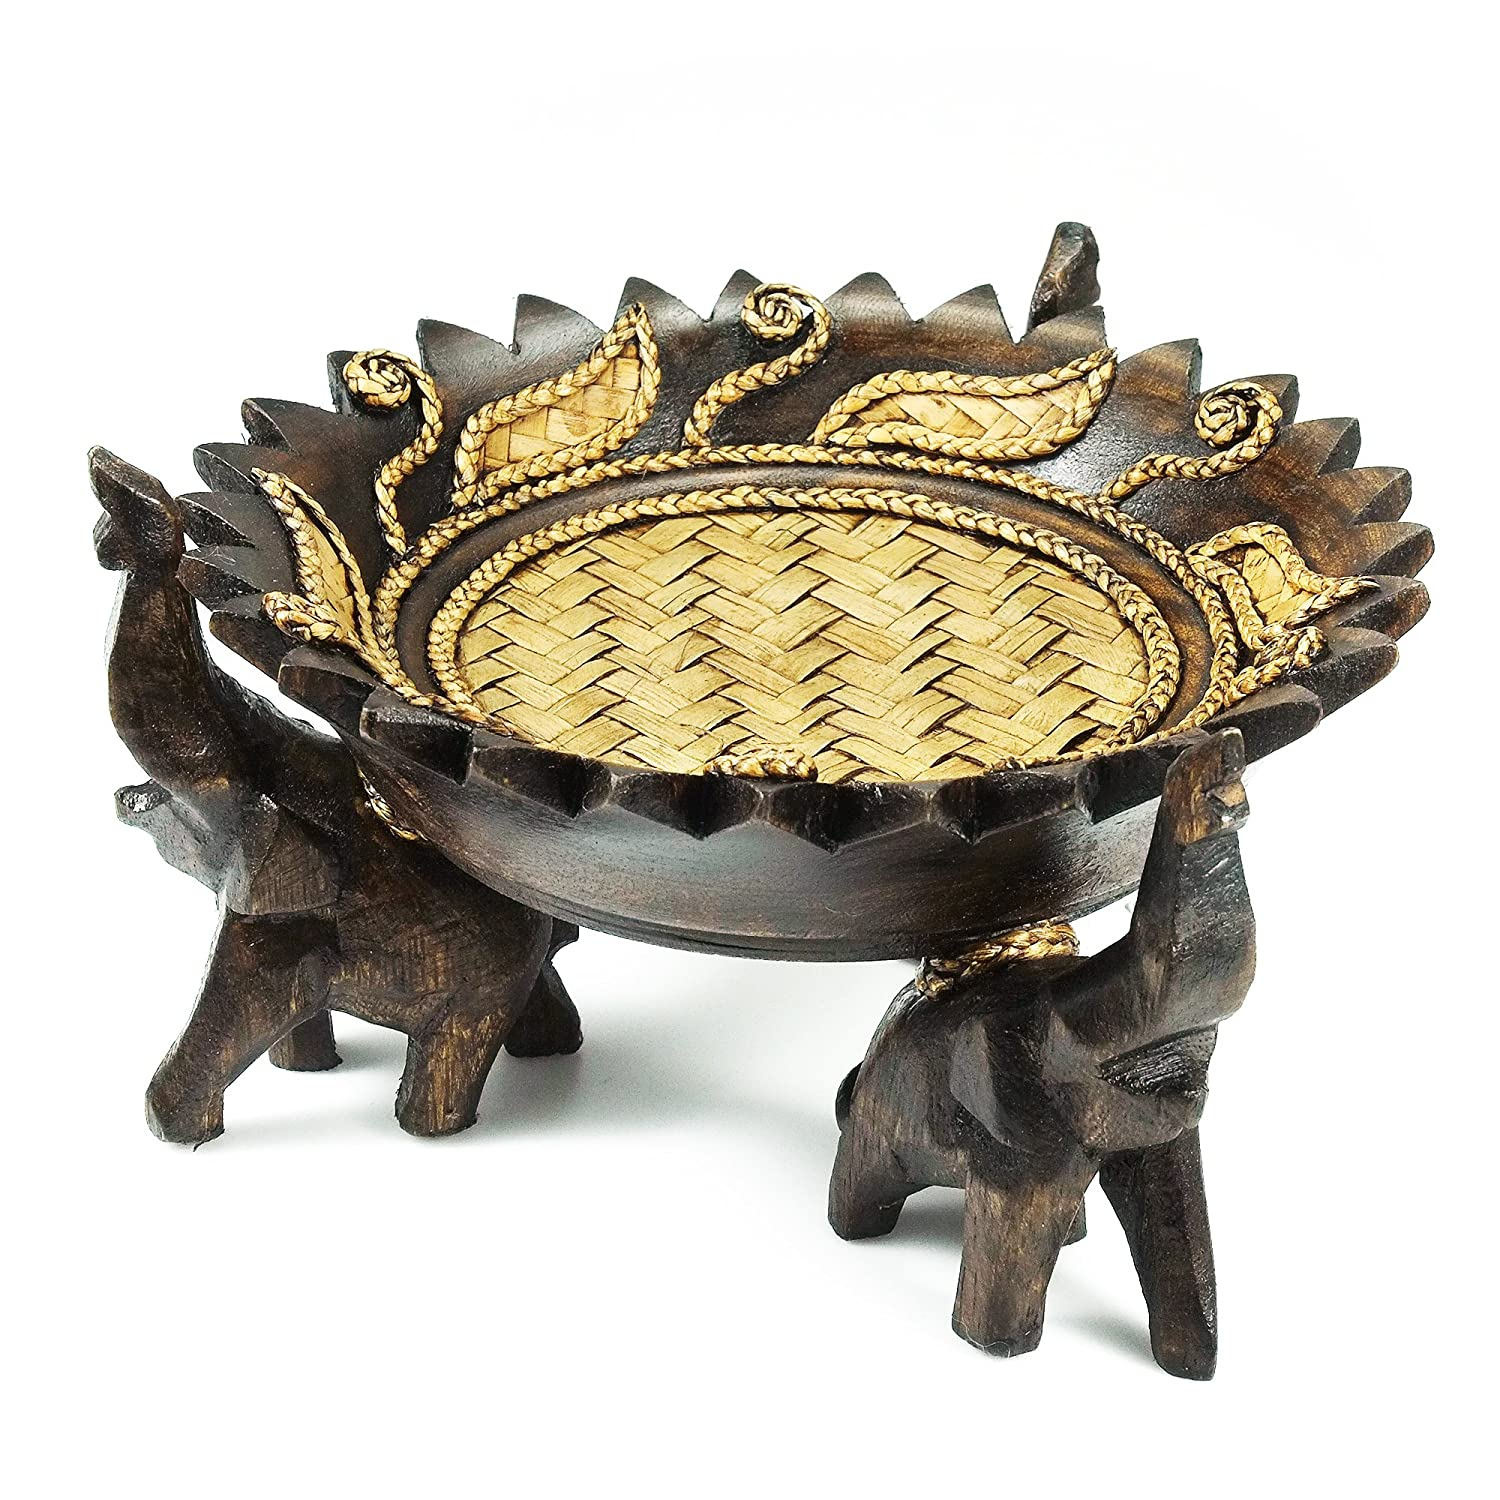 Rejoicing Elephant Tray Adorned with Royal Leaves Carved Rain Tree Wood Circular Bowl - Fair Trade Handicraft by Thai Artisans